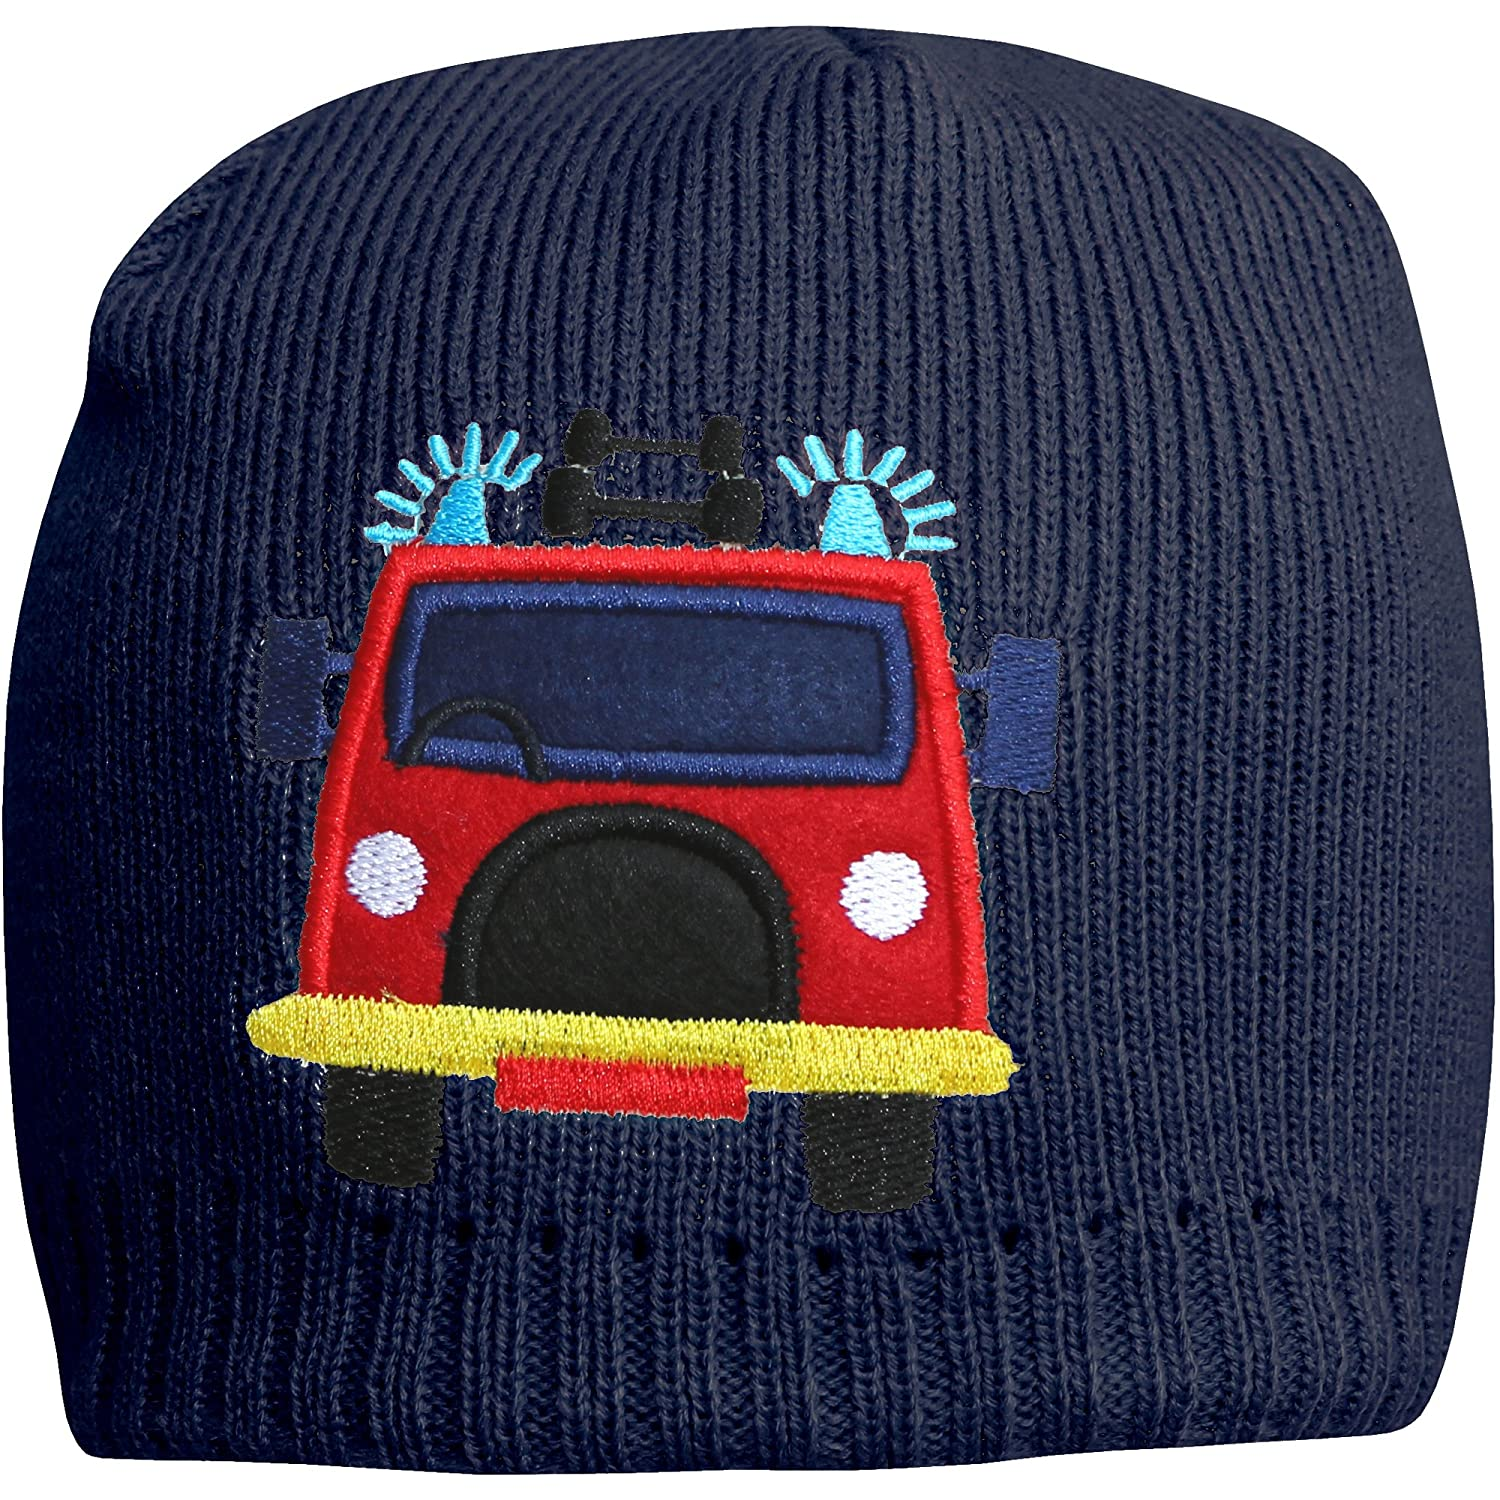 TeddyTs Boys Fire Engine Thermal Beanie Hat with Micro-Fleece Lining